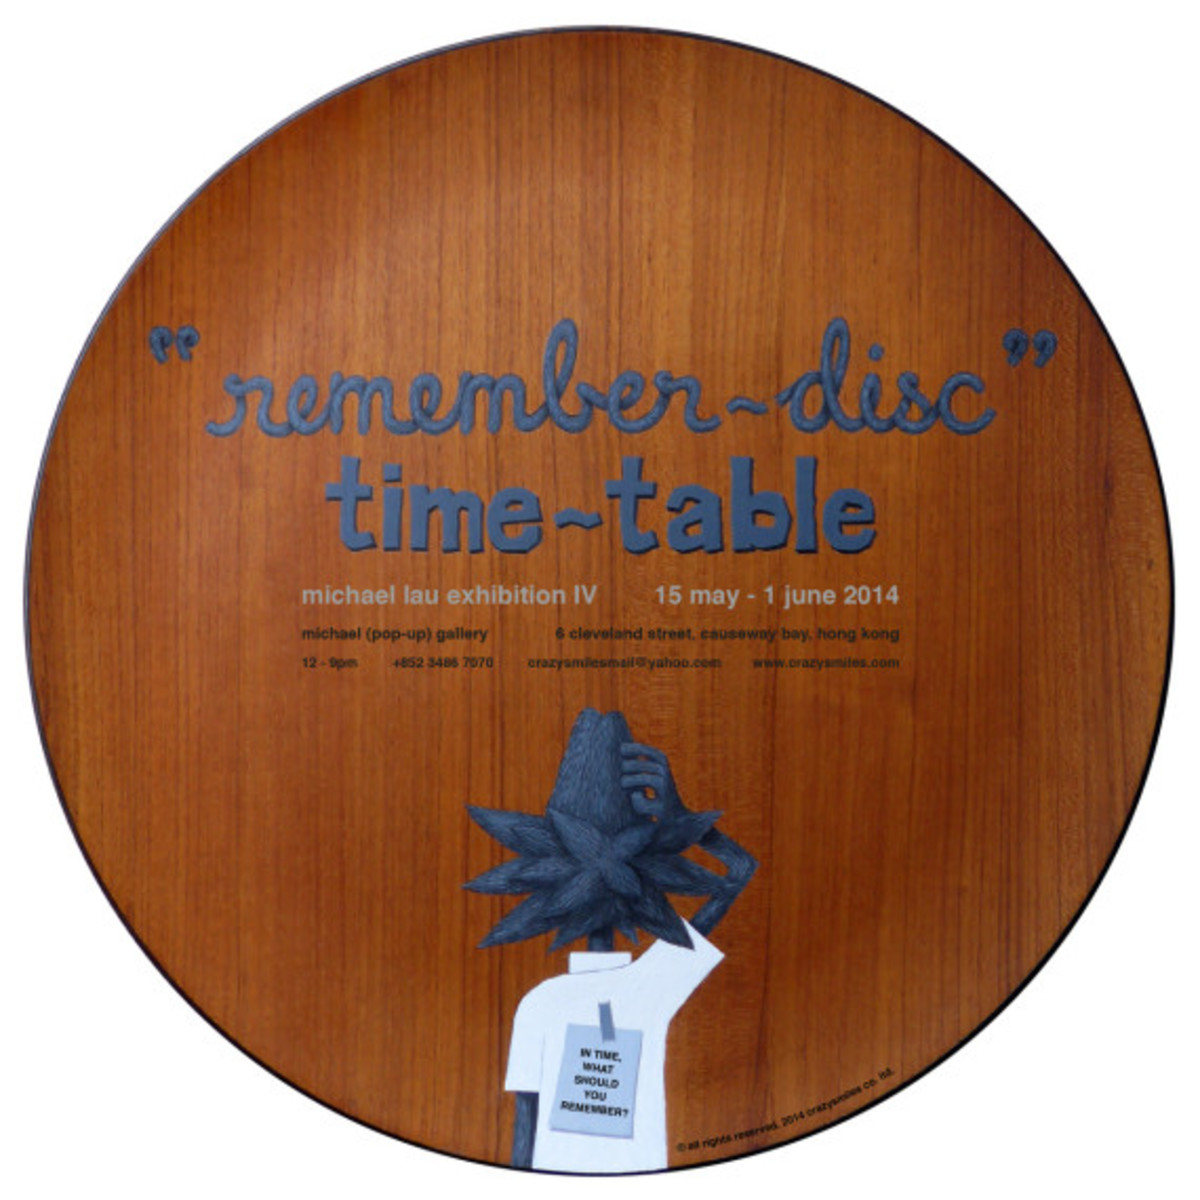 michael-lau-exhibition-iv-remember-disc-time-table-02